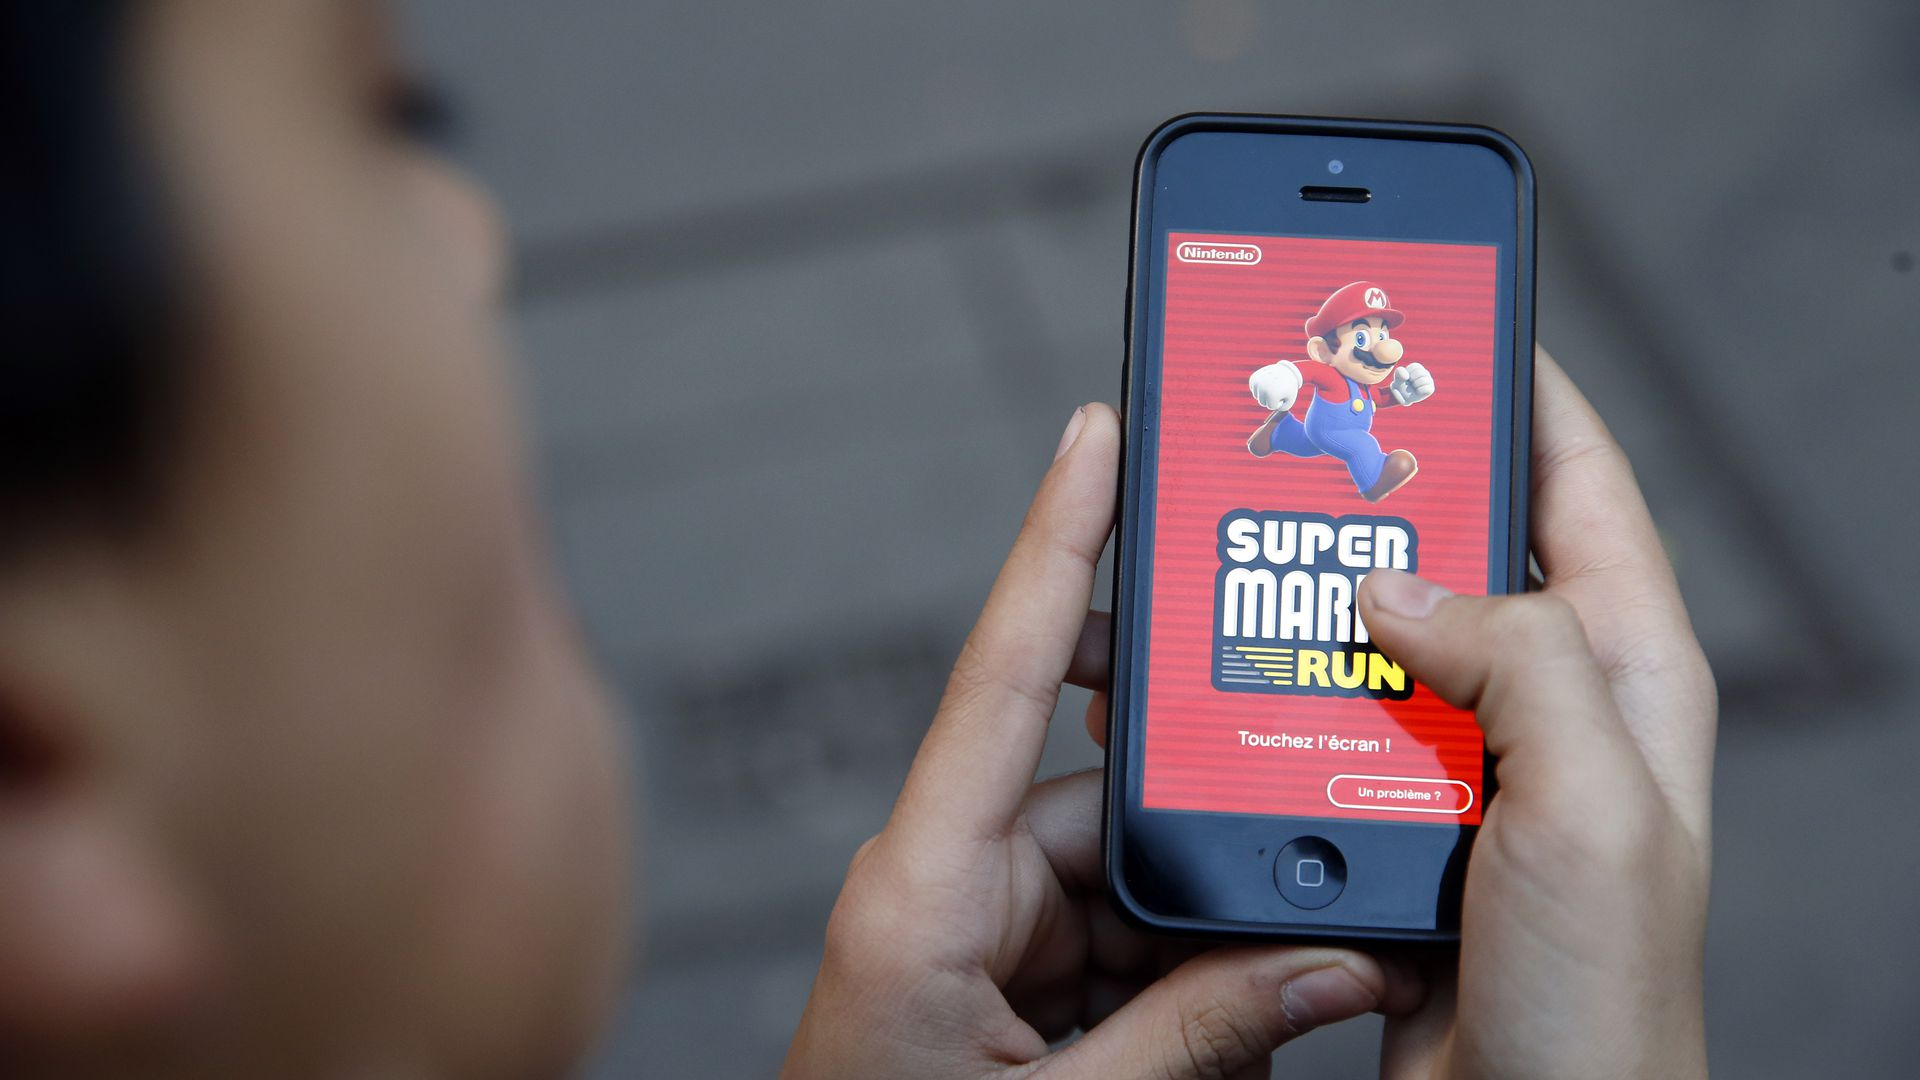 In this image, a woman holds a phone to the camera that displays the Mario Run game logo.